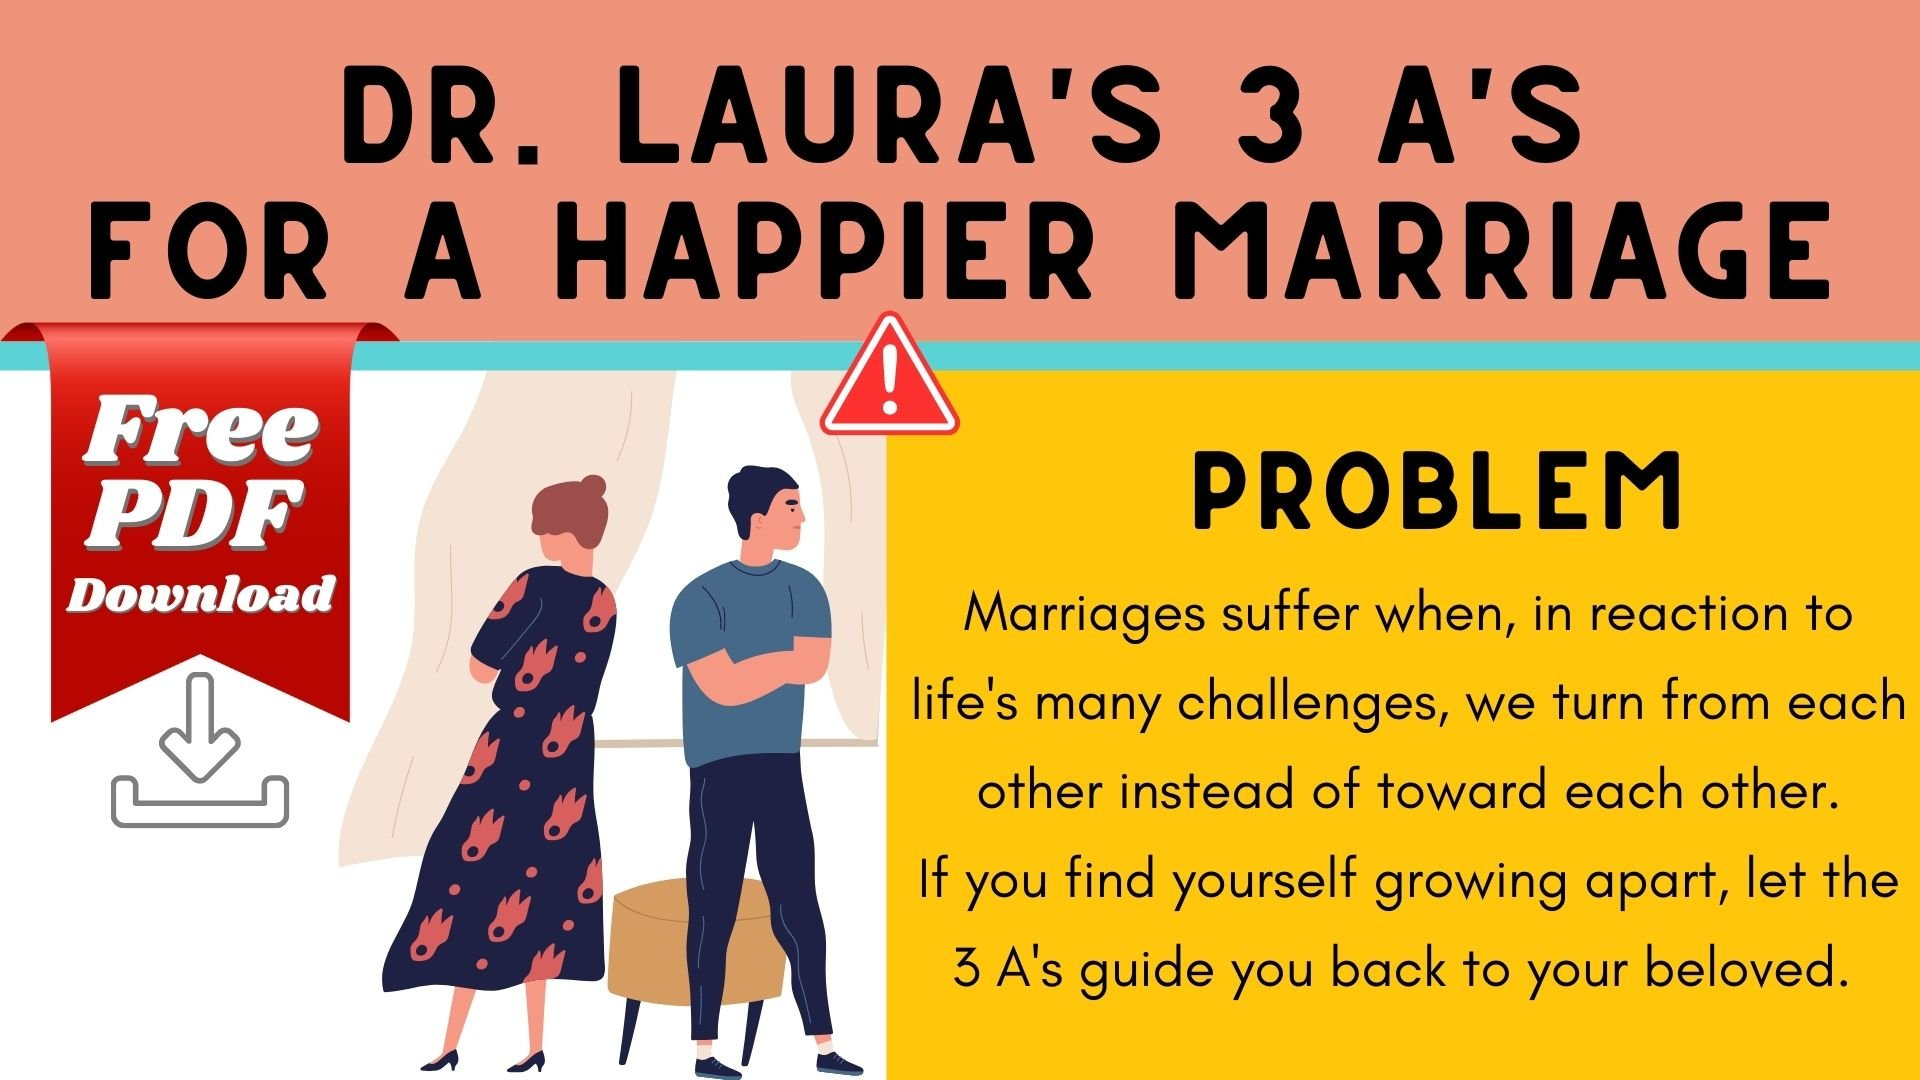 Blog: Dr. Laura's 3 A's for a Happier Marriage